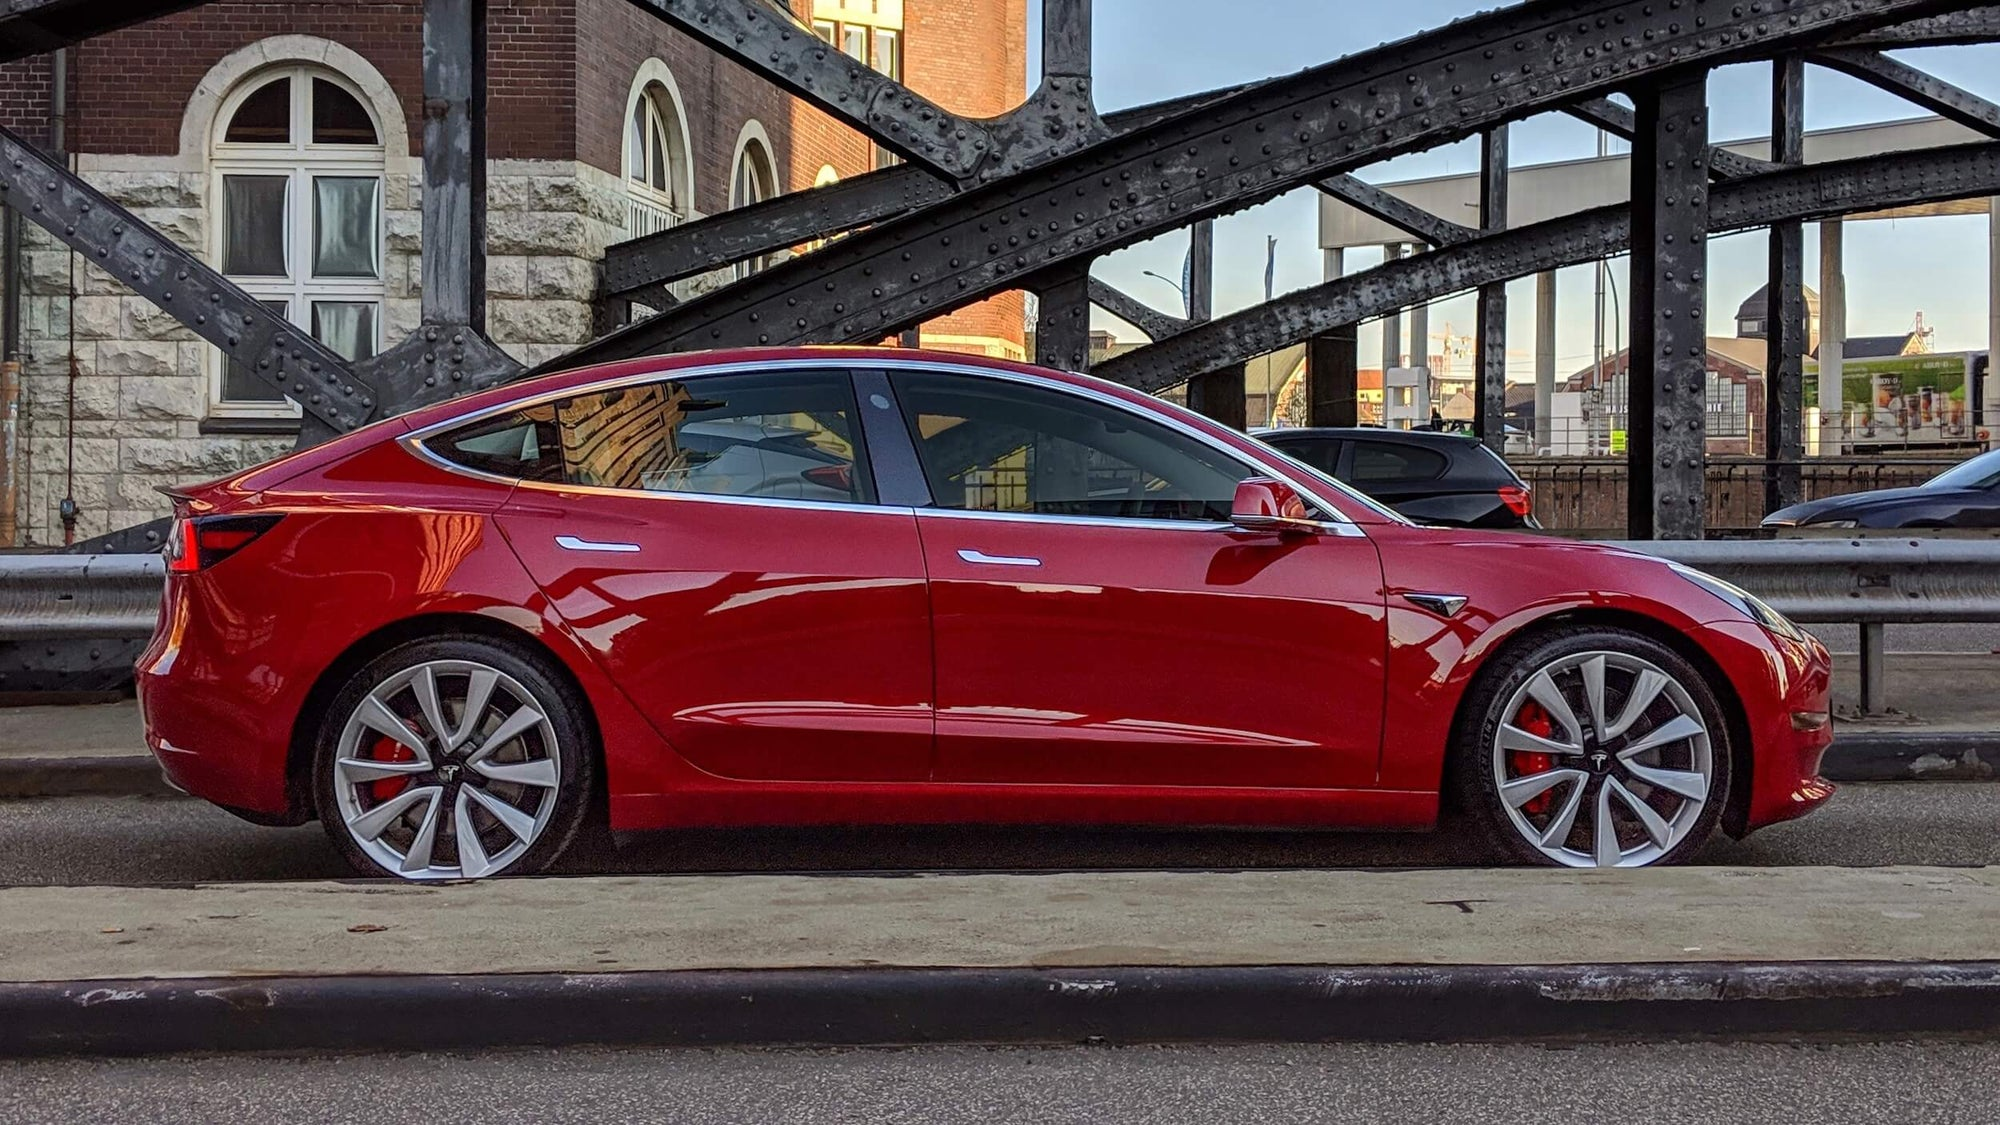 Tesla Model 3 Is Leading in Luxembourg With More Than 2X of The 2nd Place